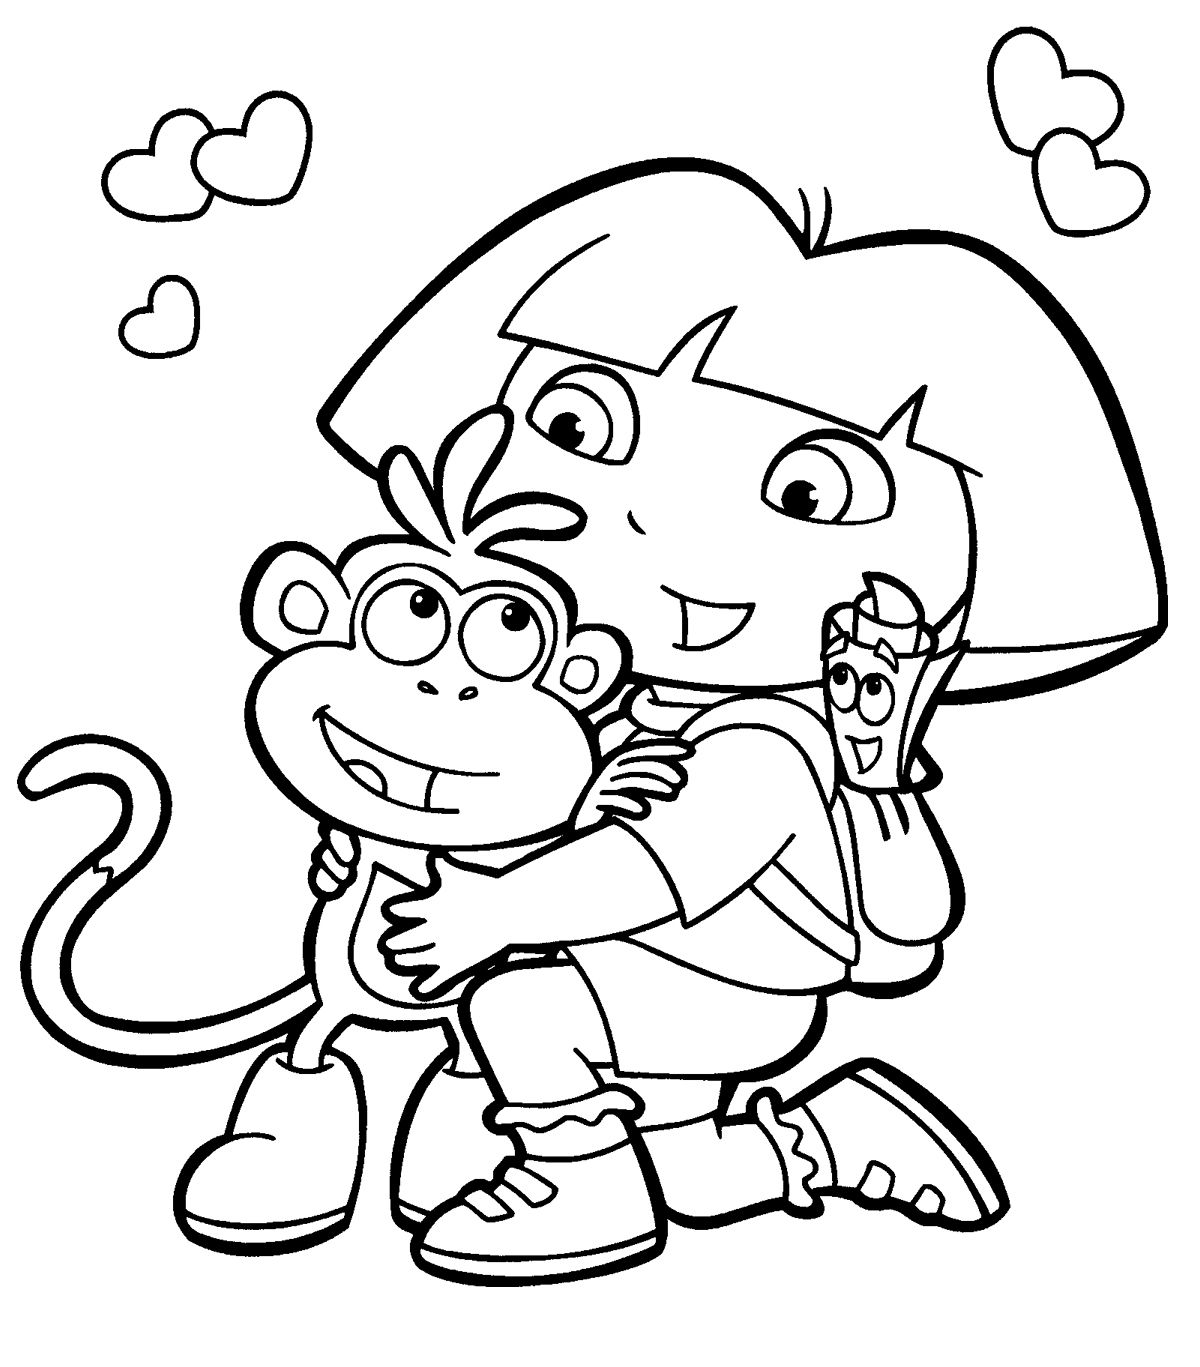 1200x1367 Coloring Book Pages Free Nickjrs Dora The Explorer Coloring Book